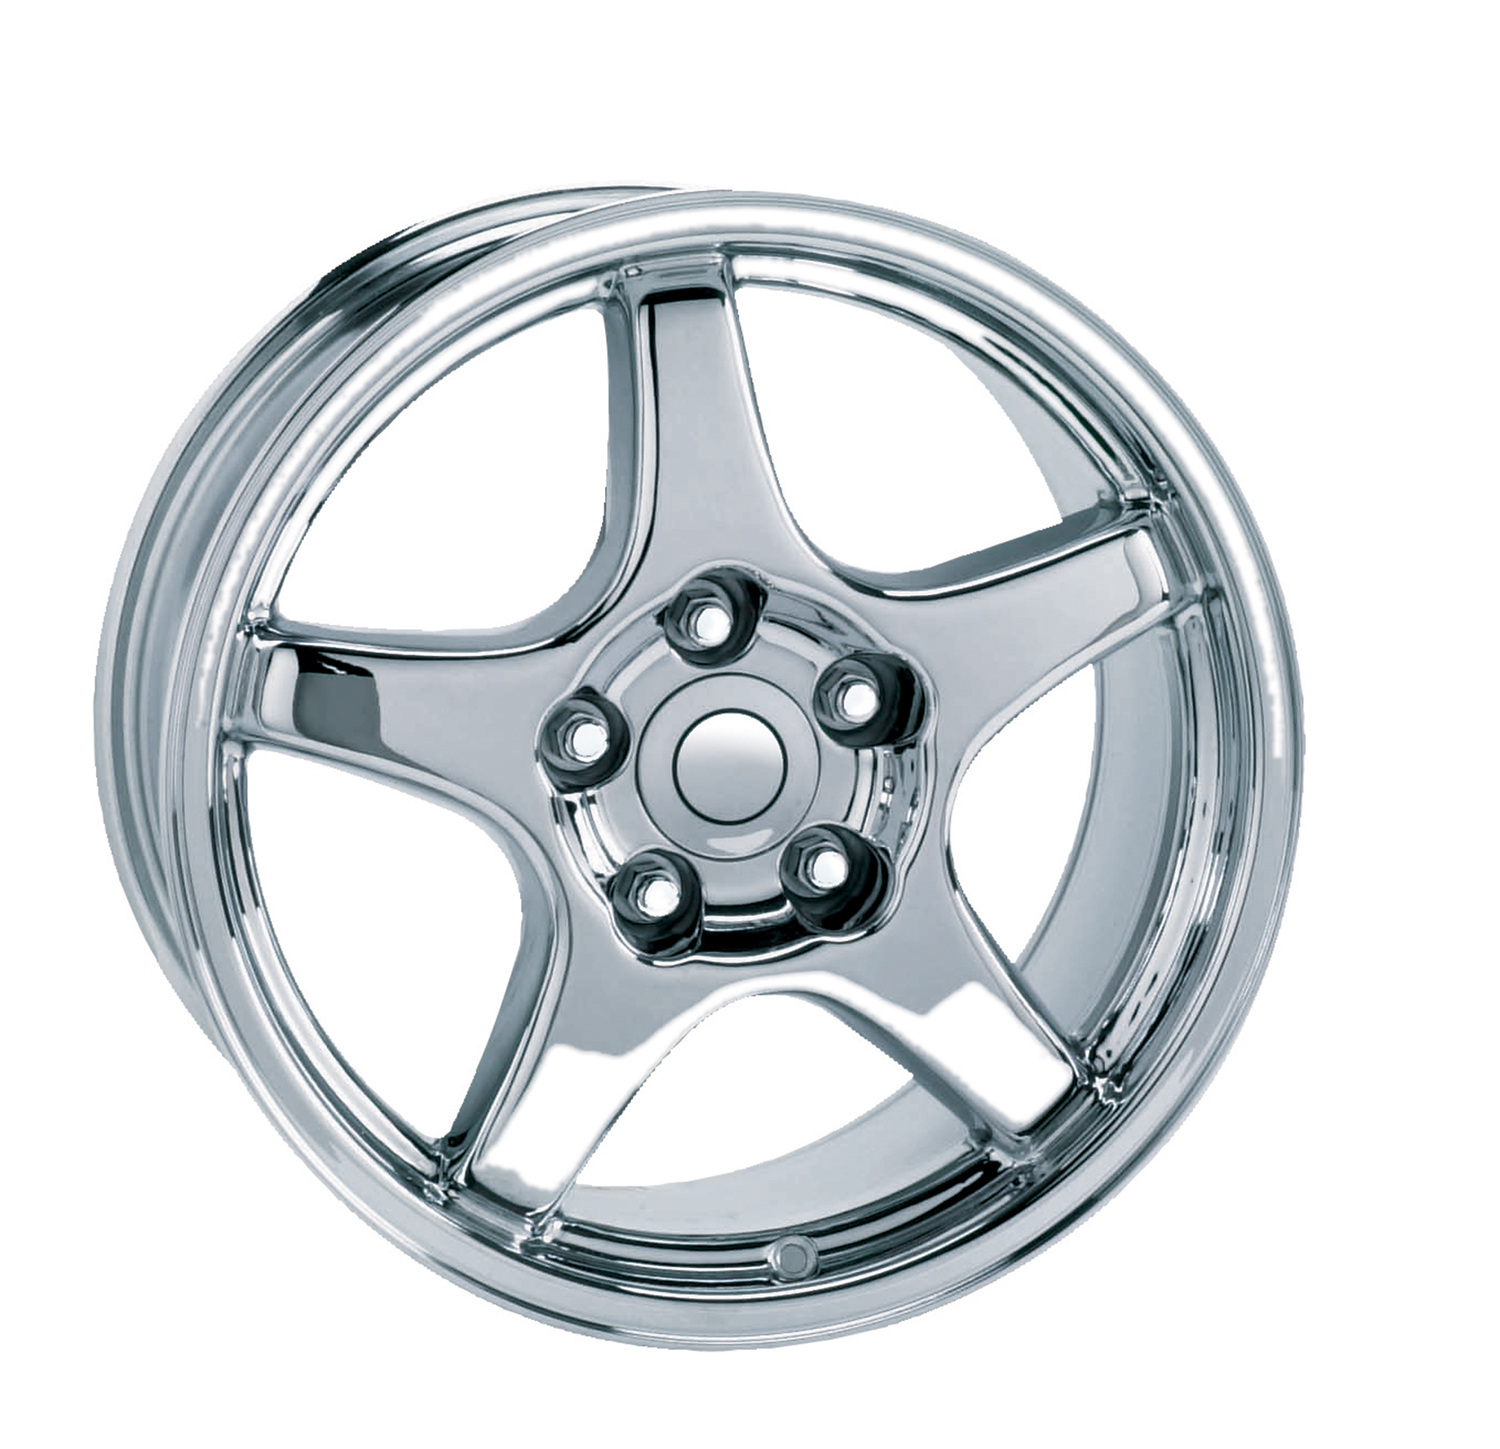 Chevrolet Corvette 1984-1996 17x11 5x4.75 +50 C4 Zr1 Style Wheel - Chrome With Cap 